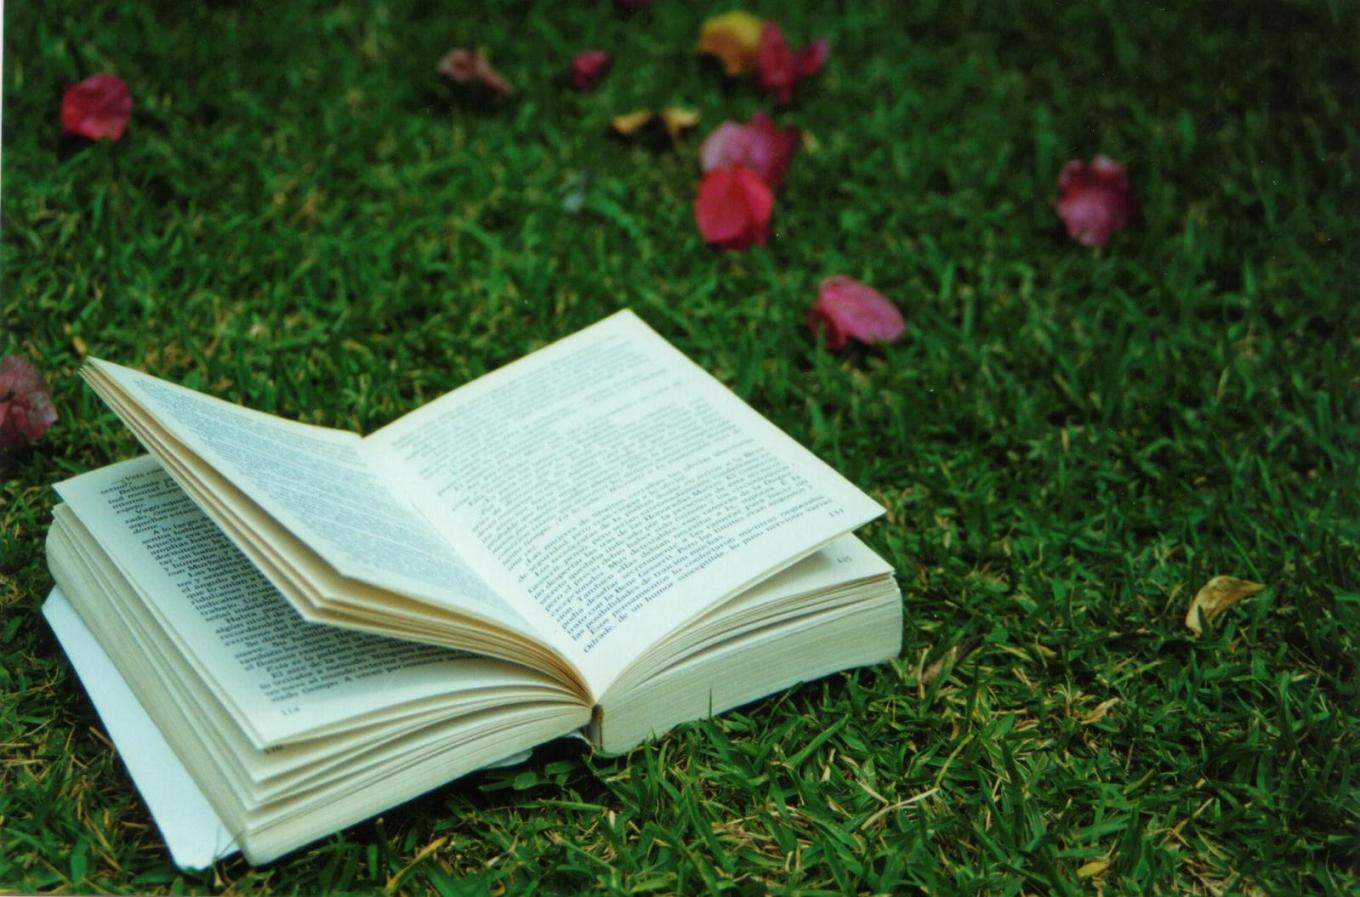 book-and-grass-1478200-1599x1054